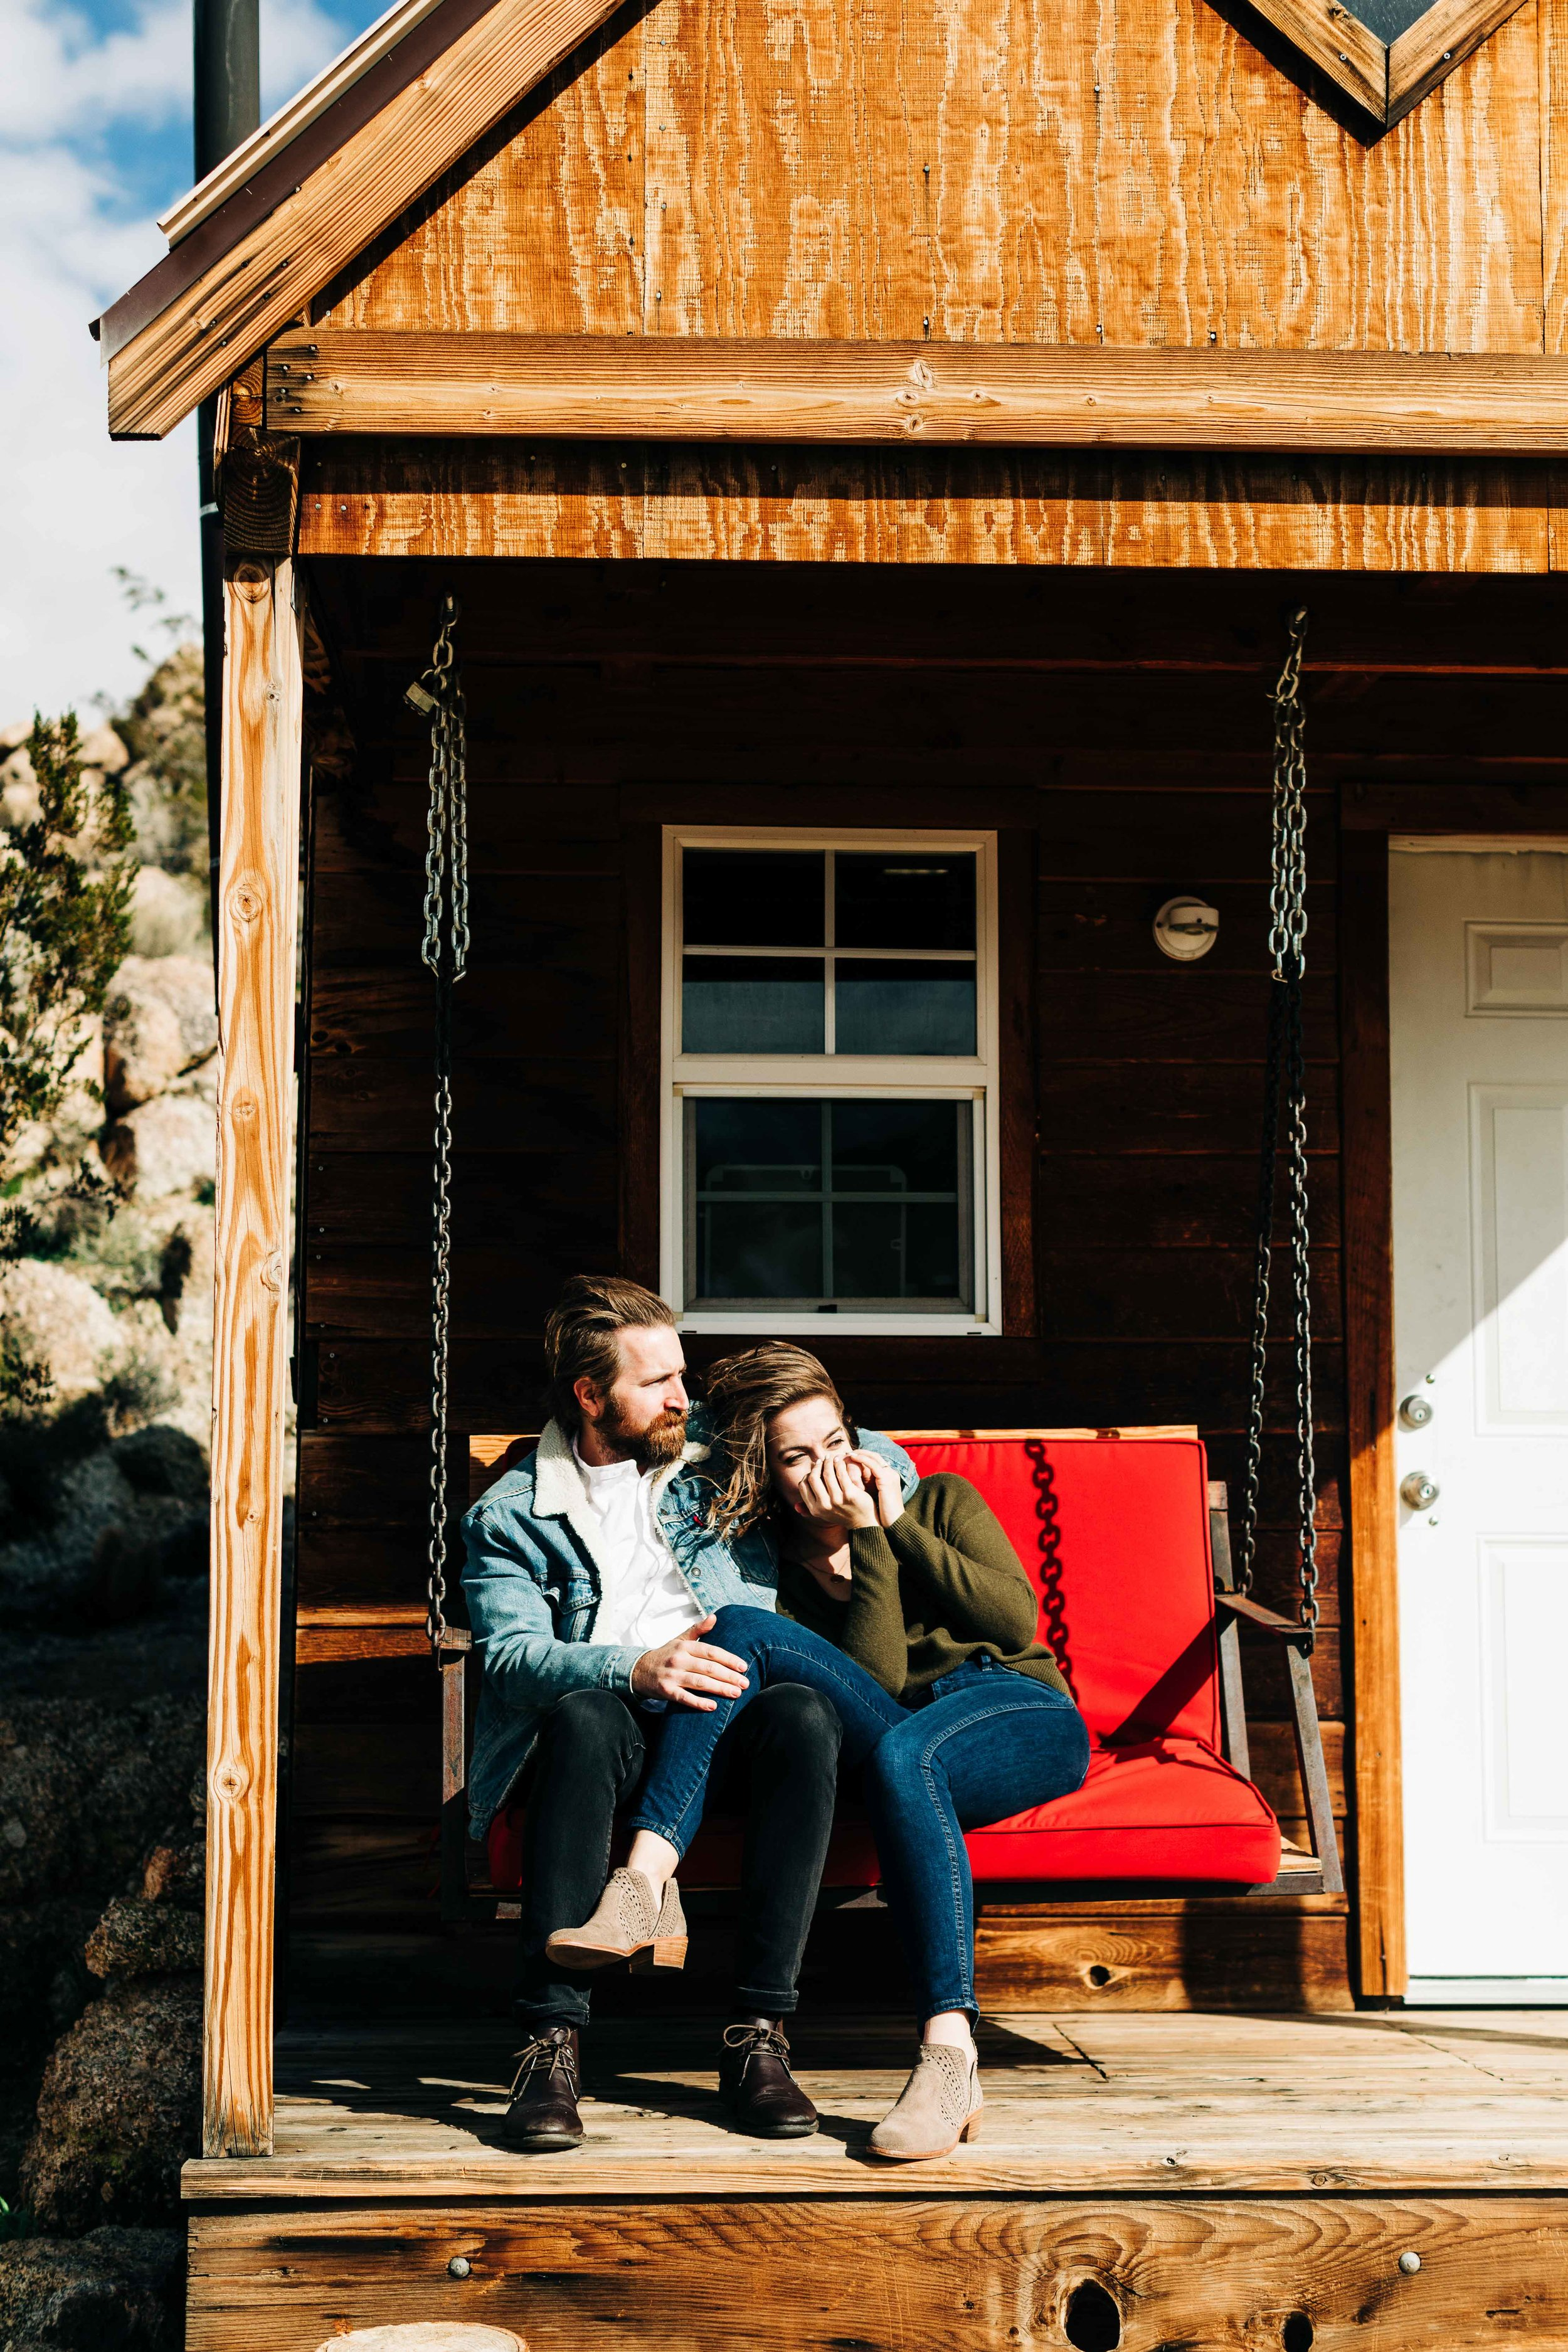 Hayley&Boomer_Joshua-Tree-Engagement-Photos_Tiny-Home_Southern-California-Wedding-Photographer_28